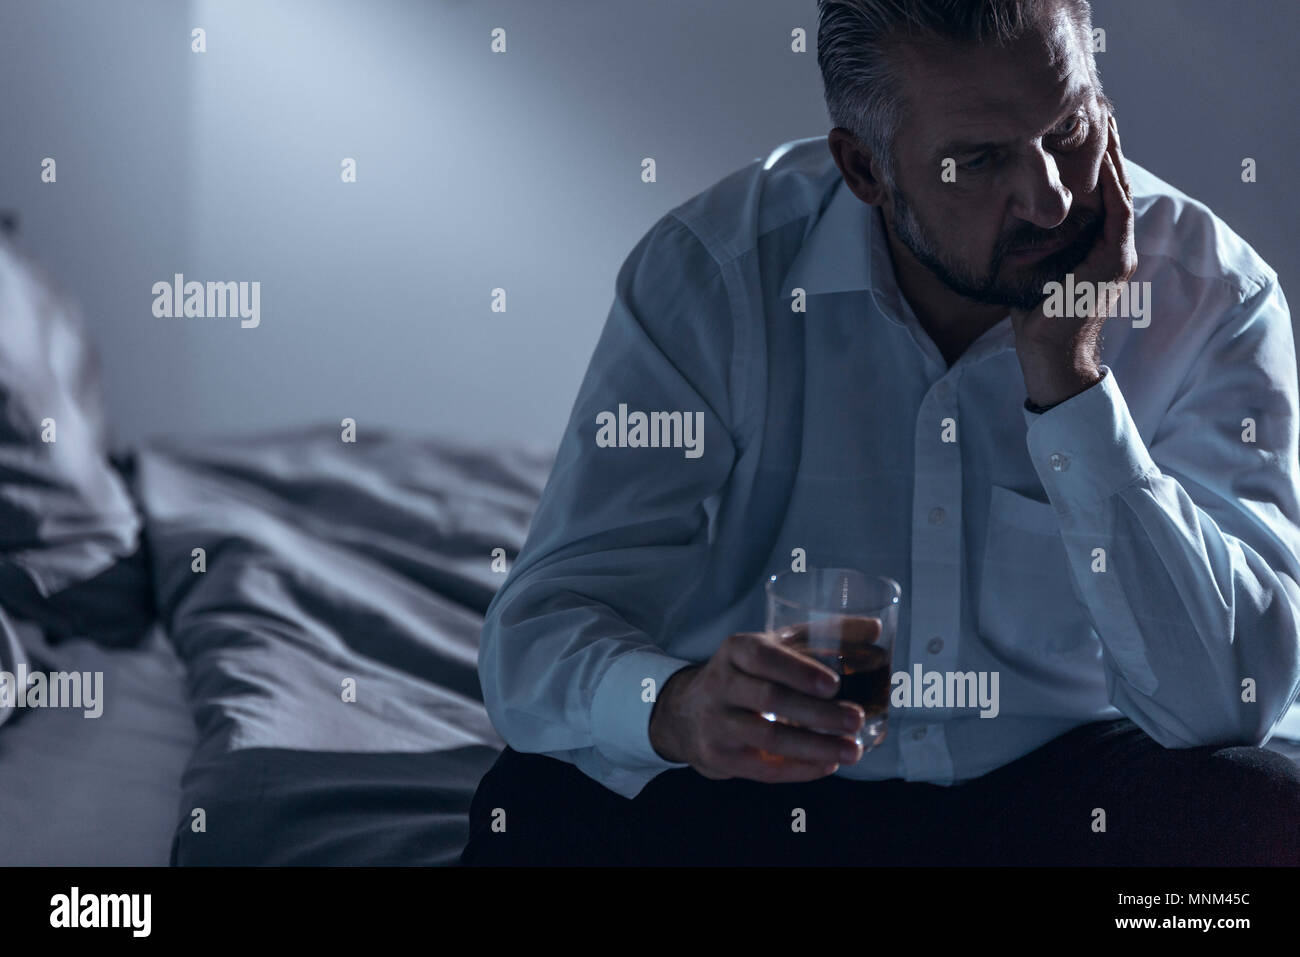 Close-up of a man with midlife crisis sitting on a bed with one hand on his chin and holding a glass of alcohol in the other - Stock Image